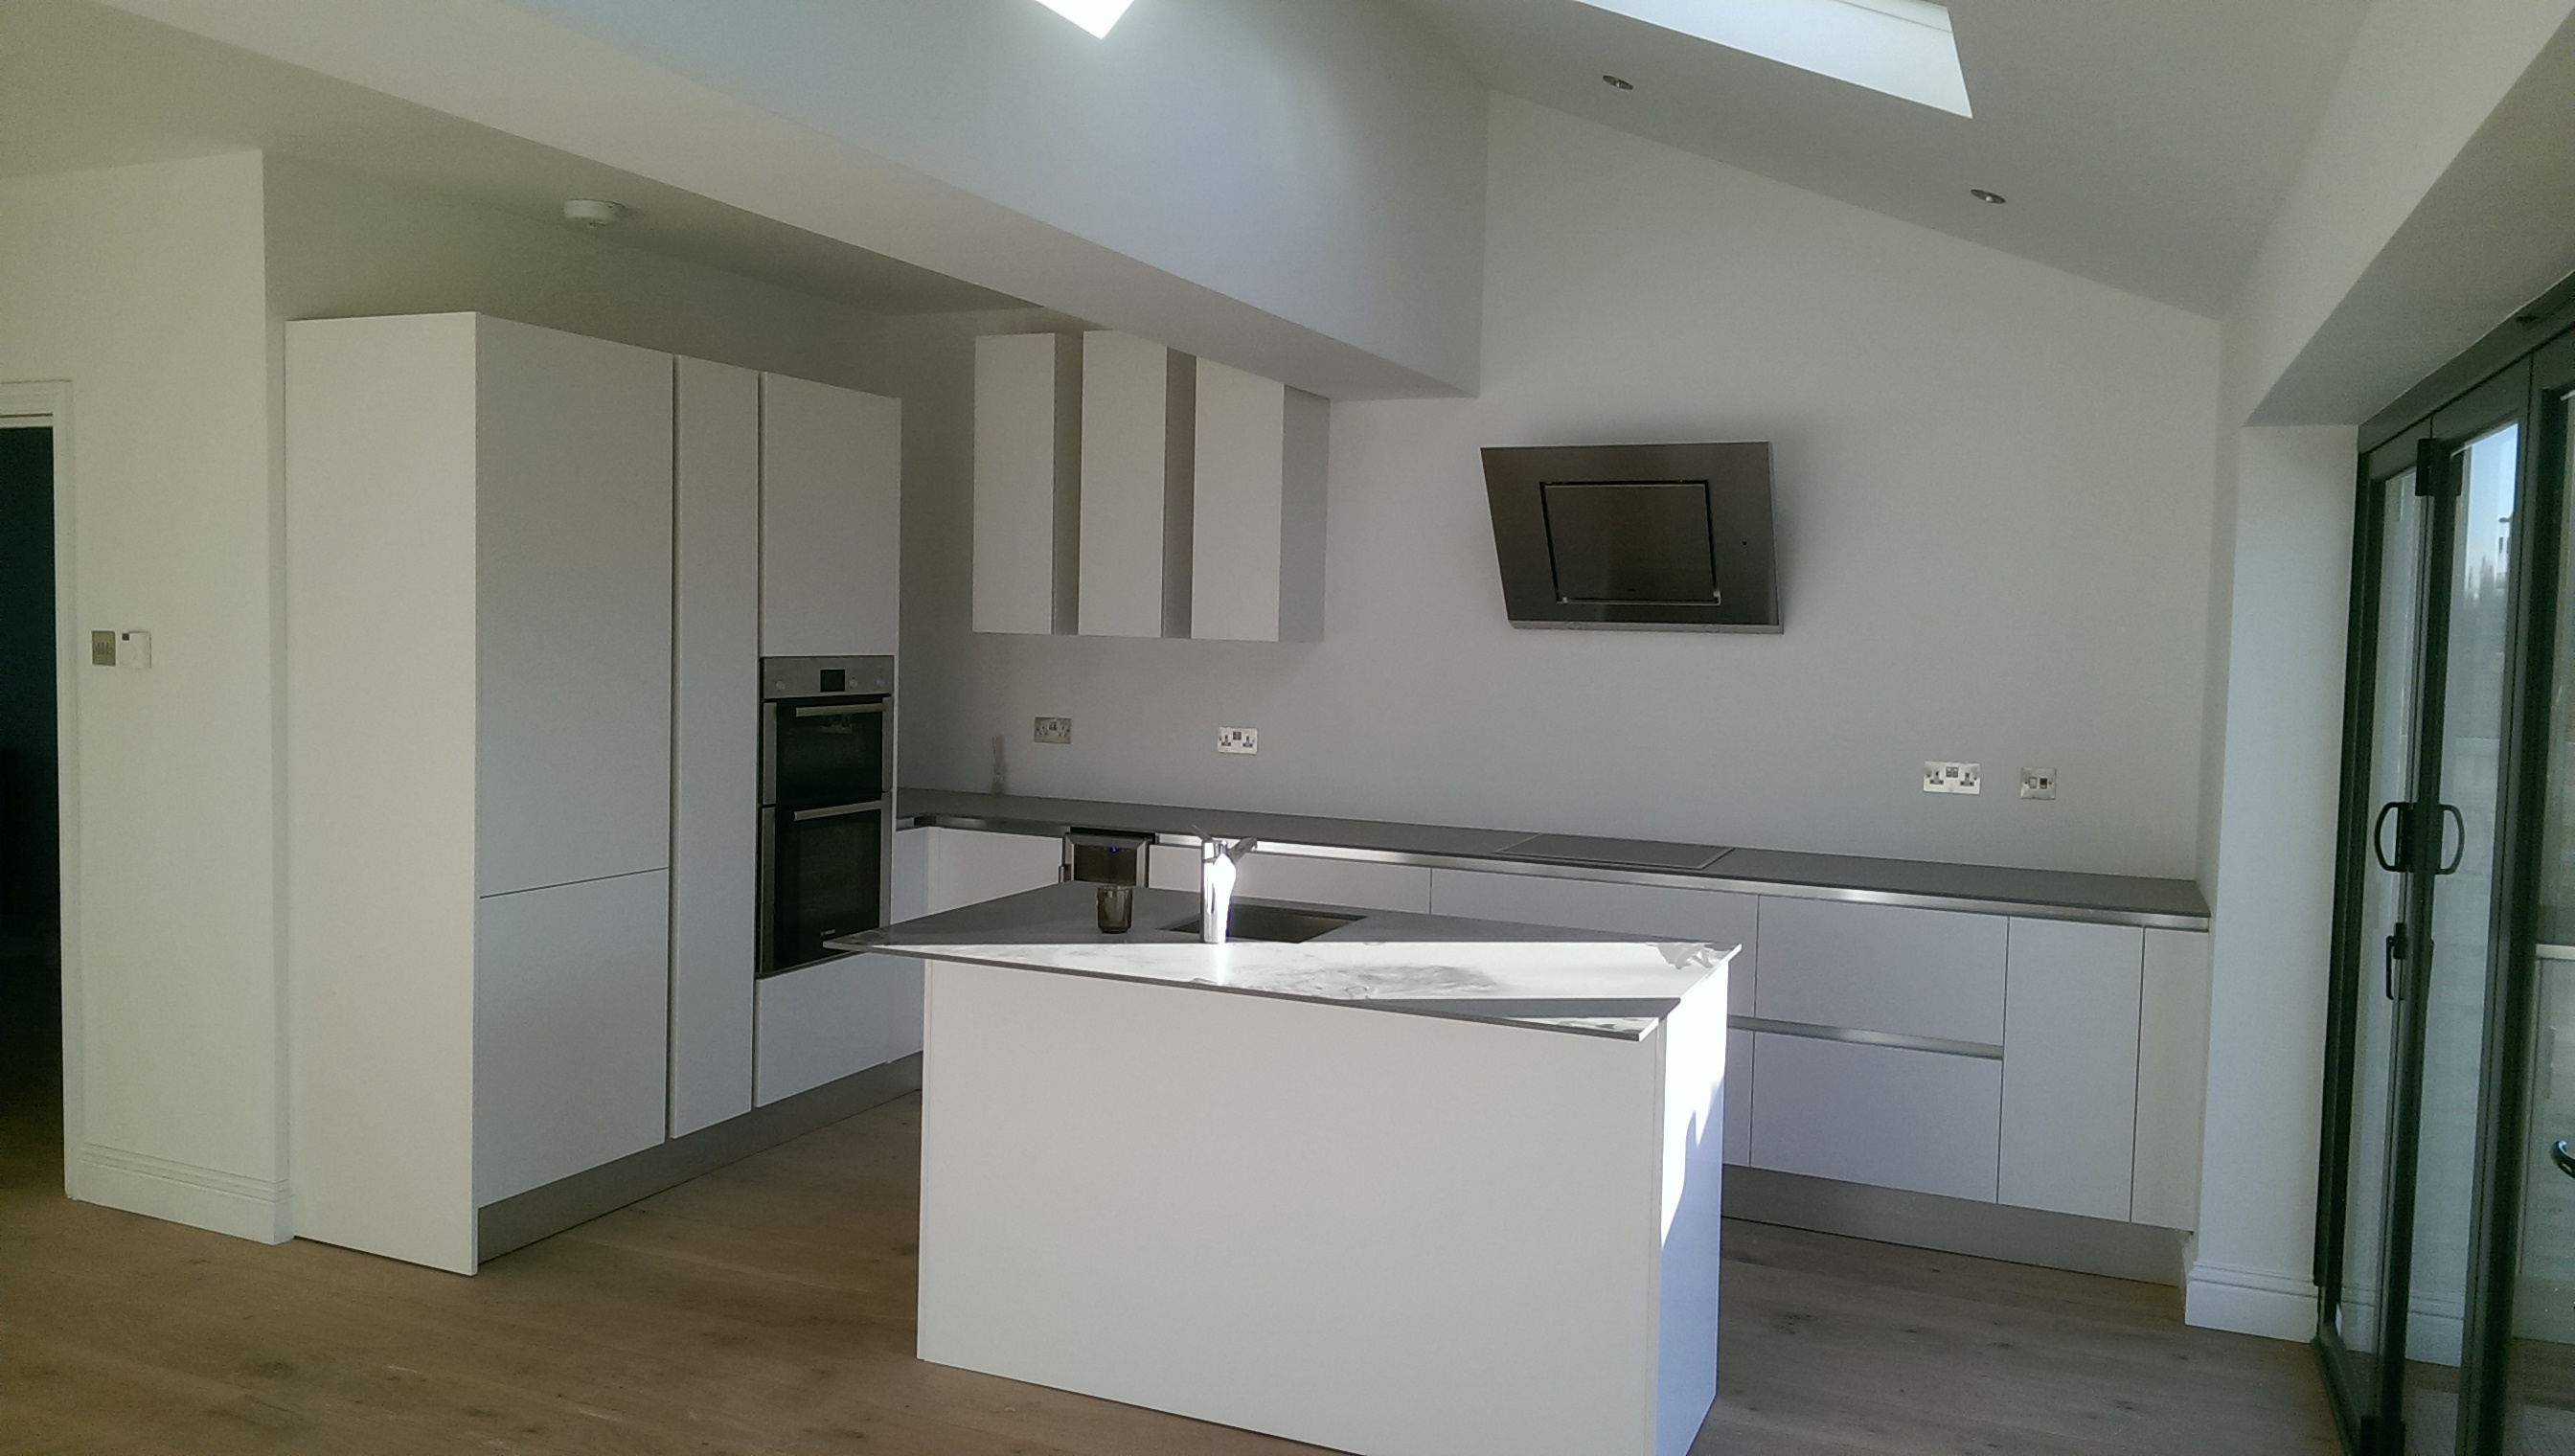 New extension with a new kitchen.